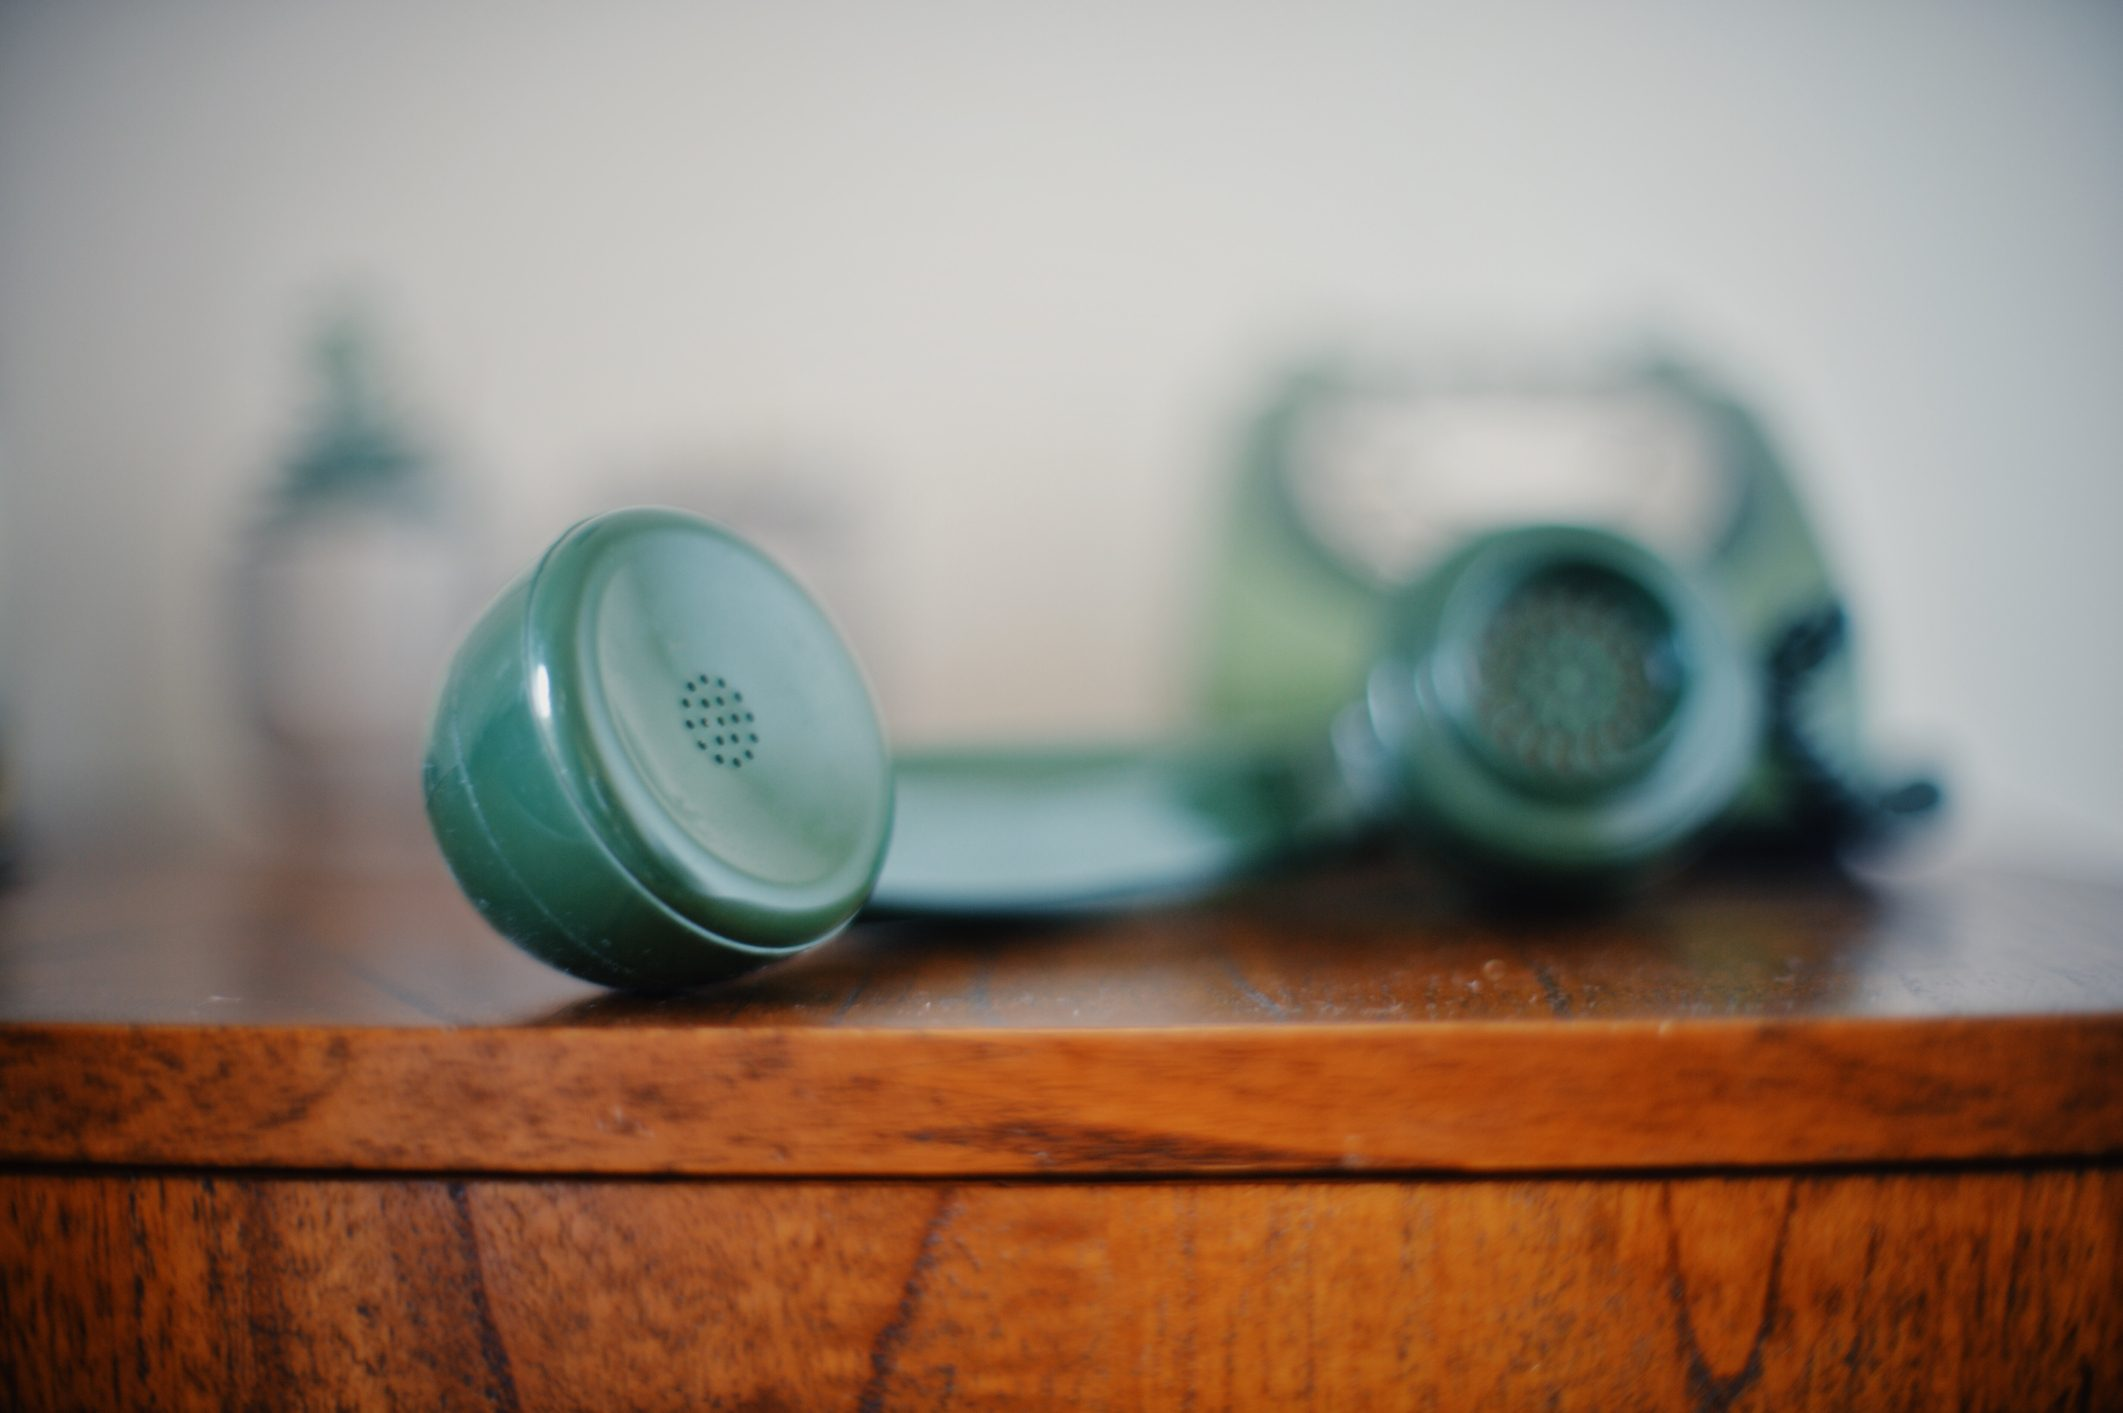 Old green telephone handset receiver